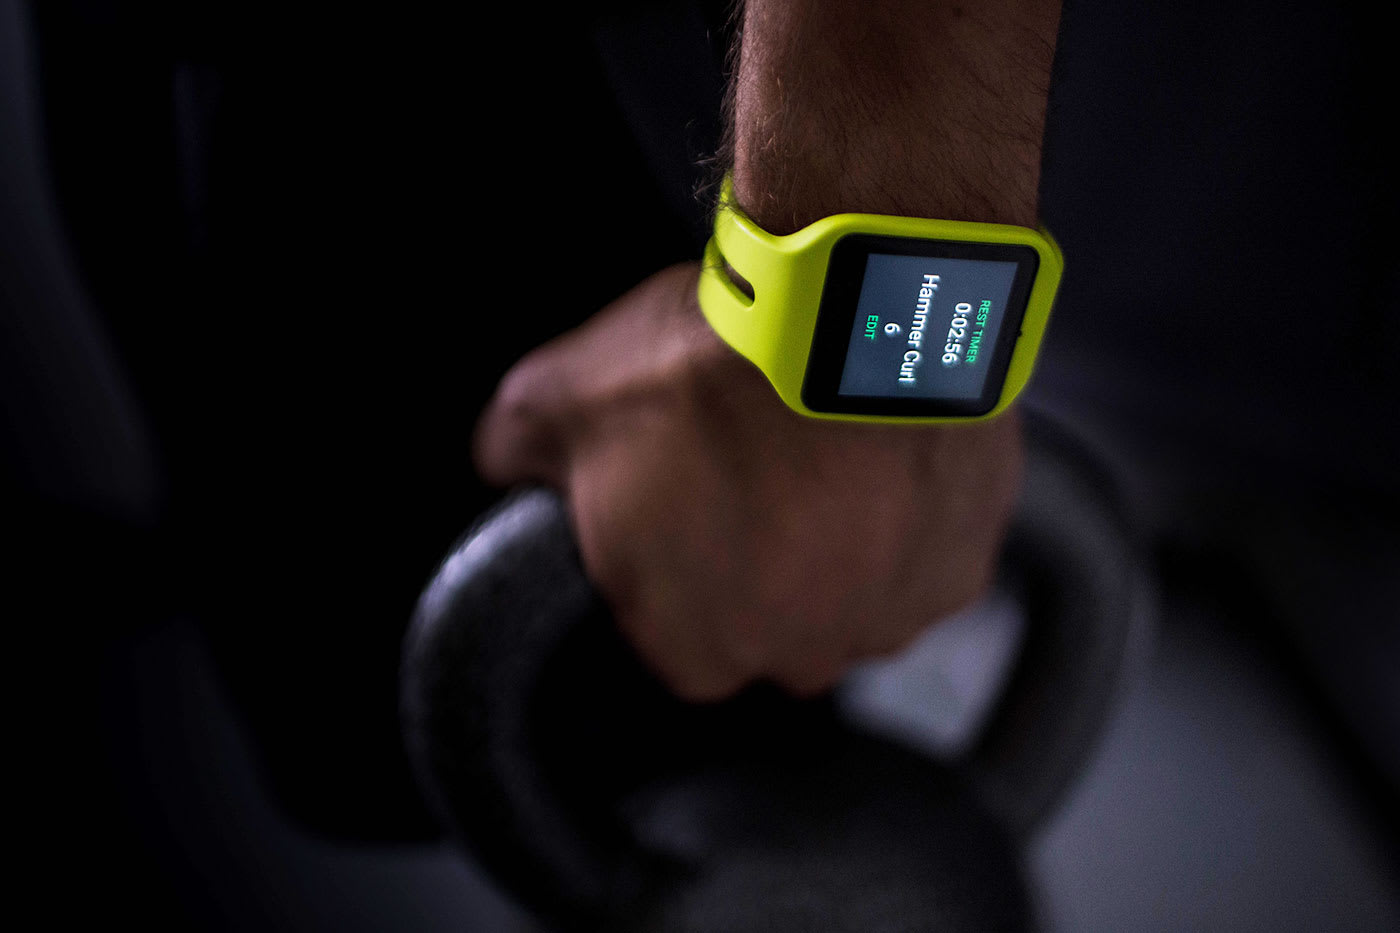 Rithmio Edge tracks weightlifting sessions with Android Wear